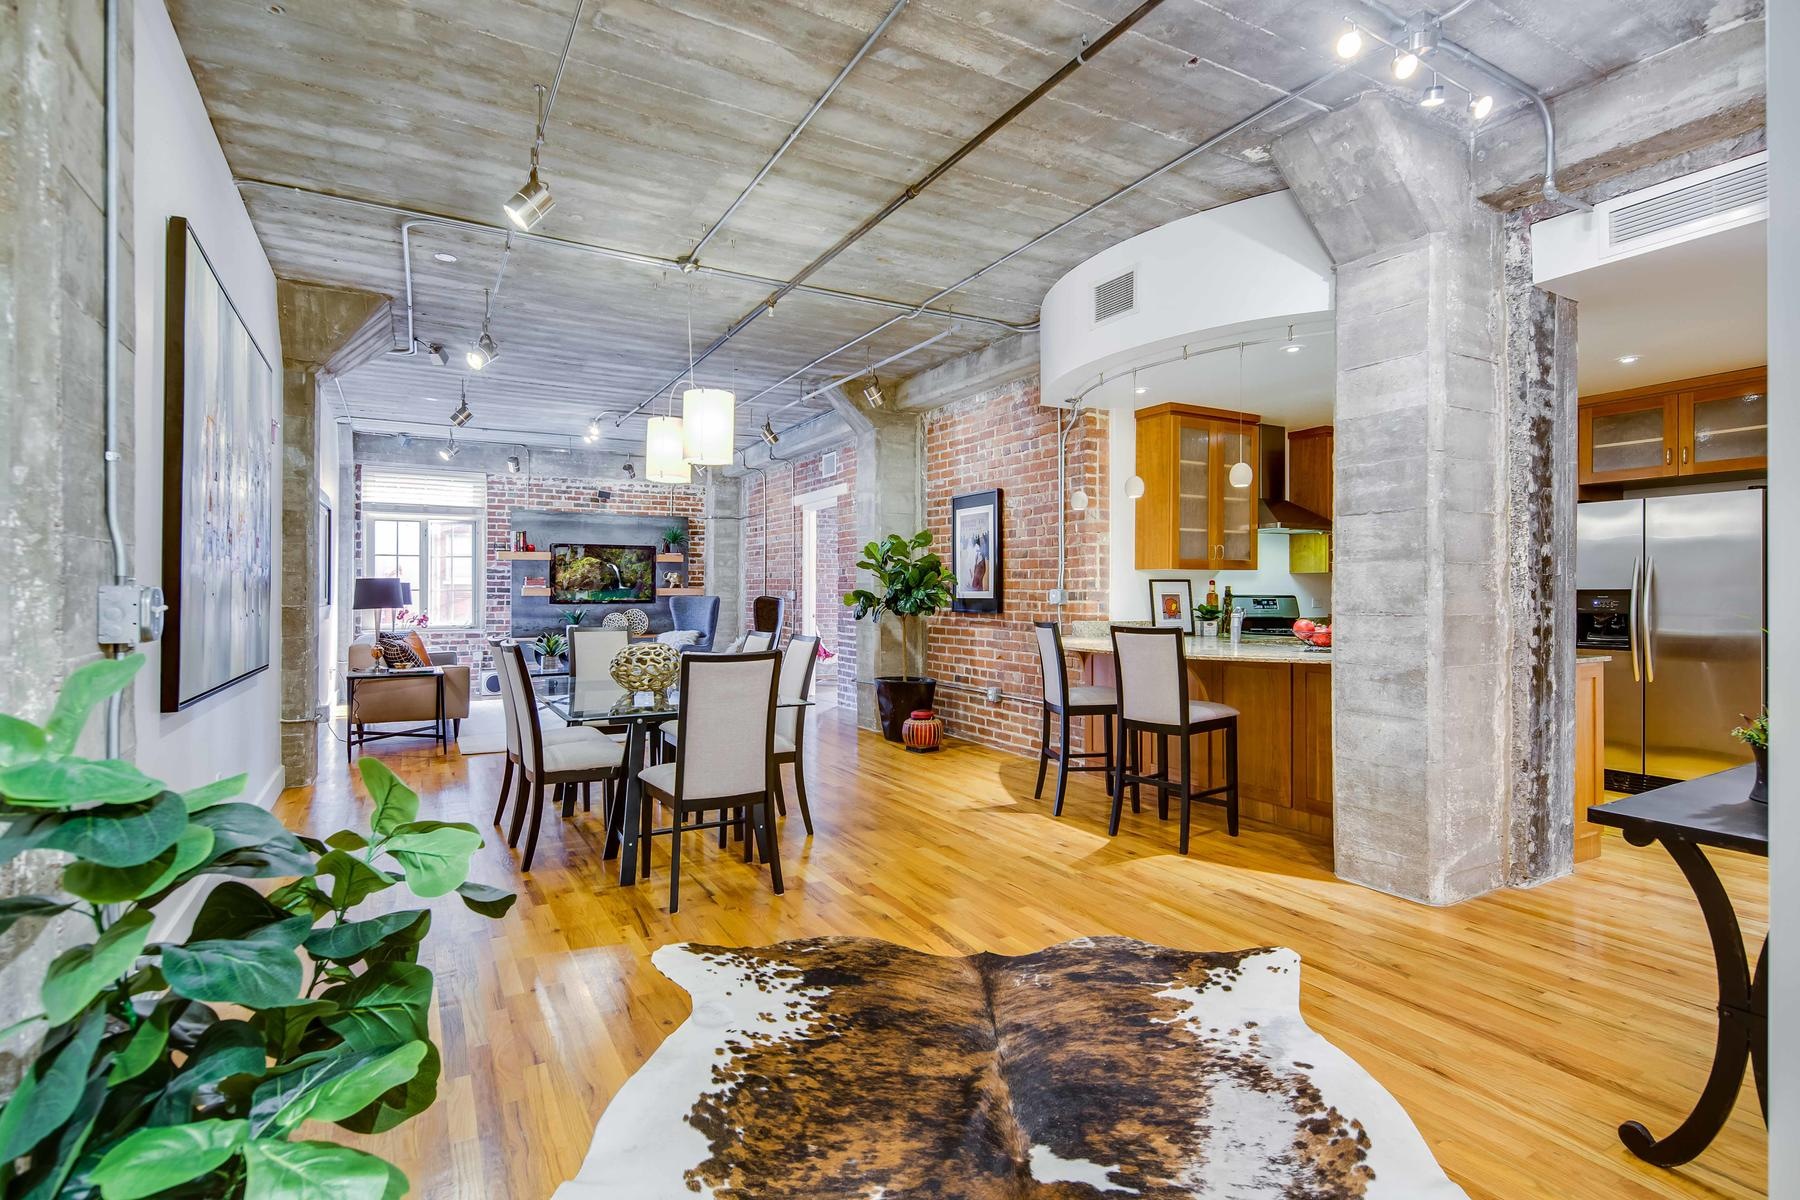 Single Family Home for Active at 1449 Wynkoop Street #408 1449 Wynkoop Street #408 Denver, Colorado 80202 United States